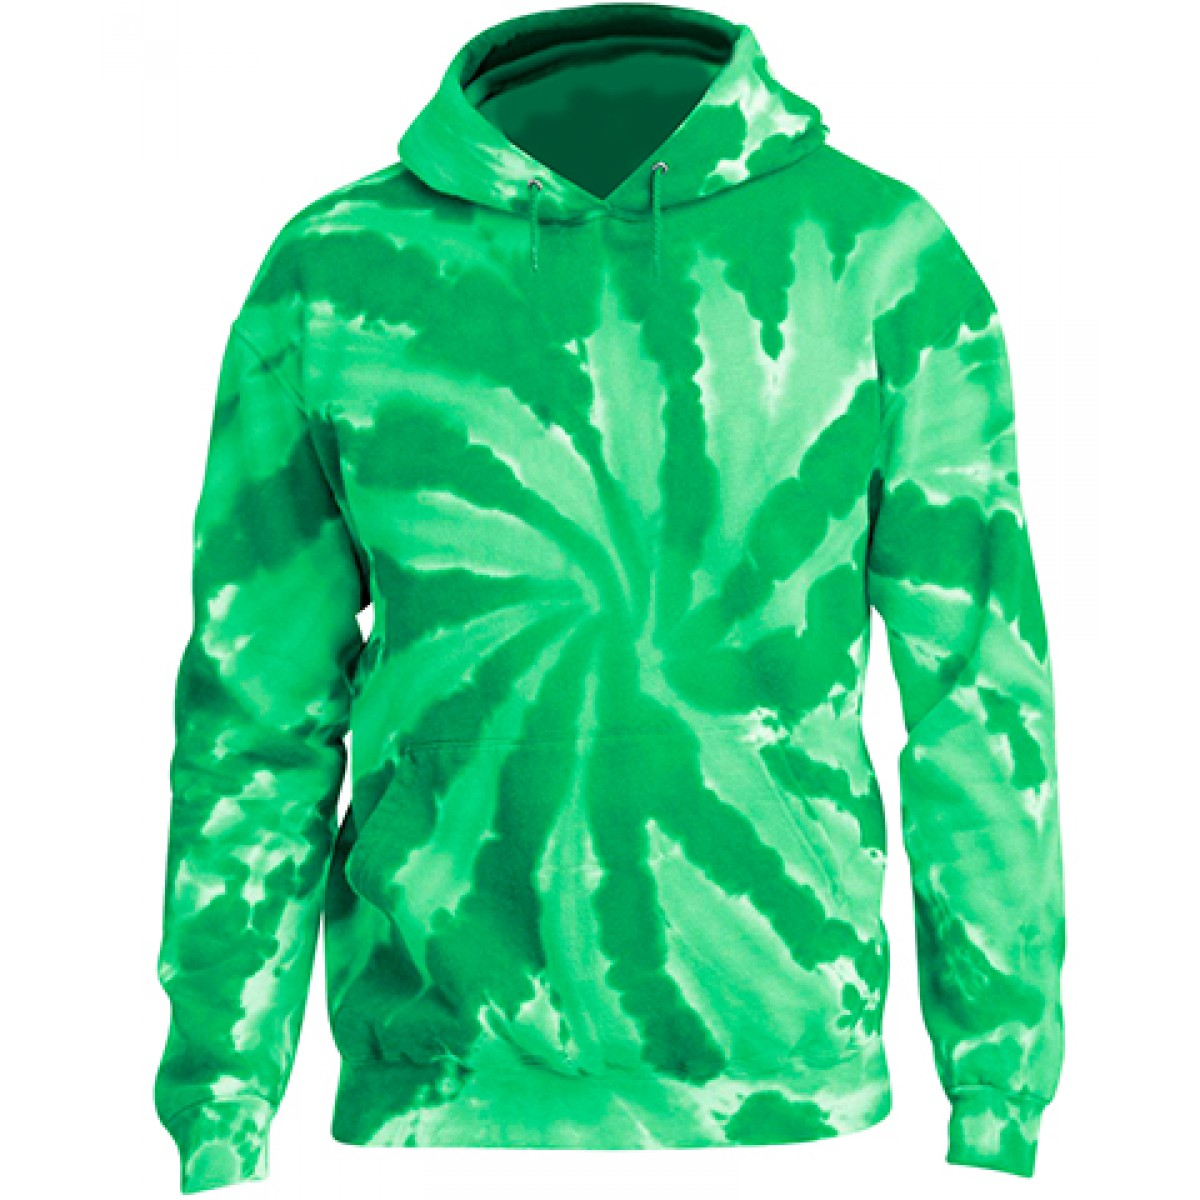 Tie-Dye Pullover Hooded Sweatshirt-Green-2XL